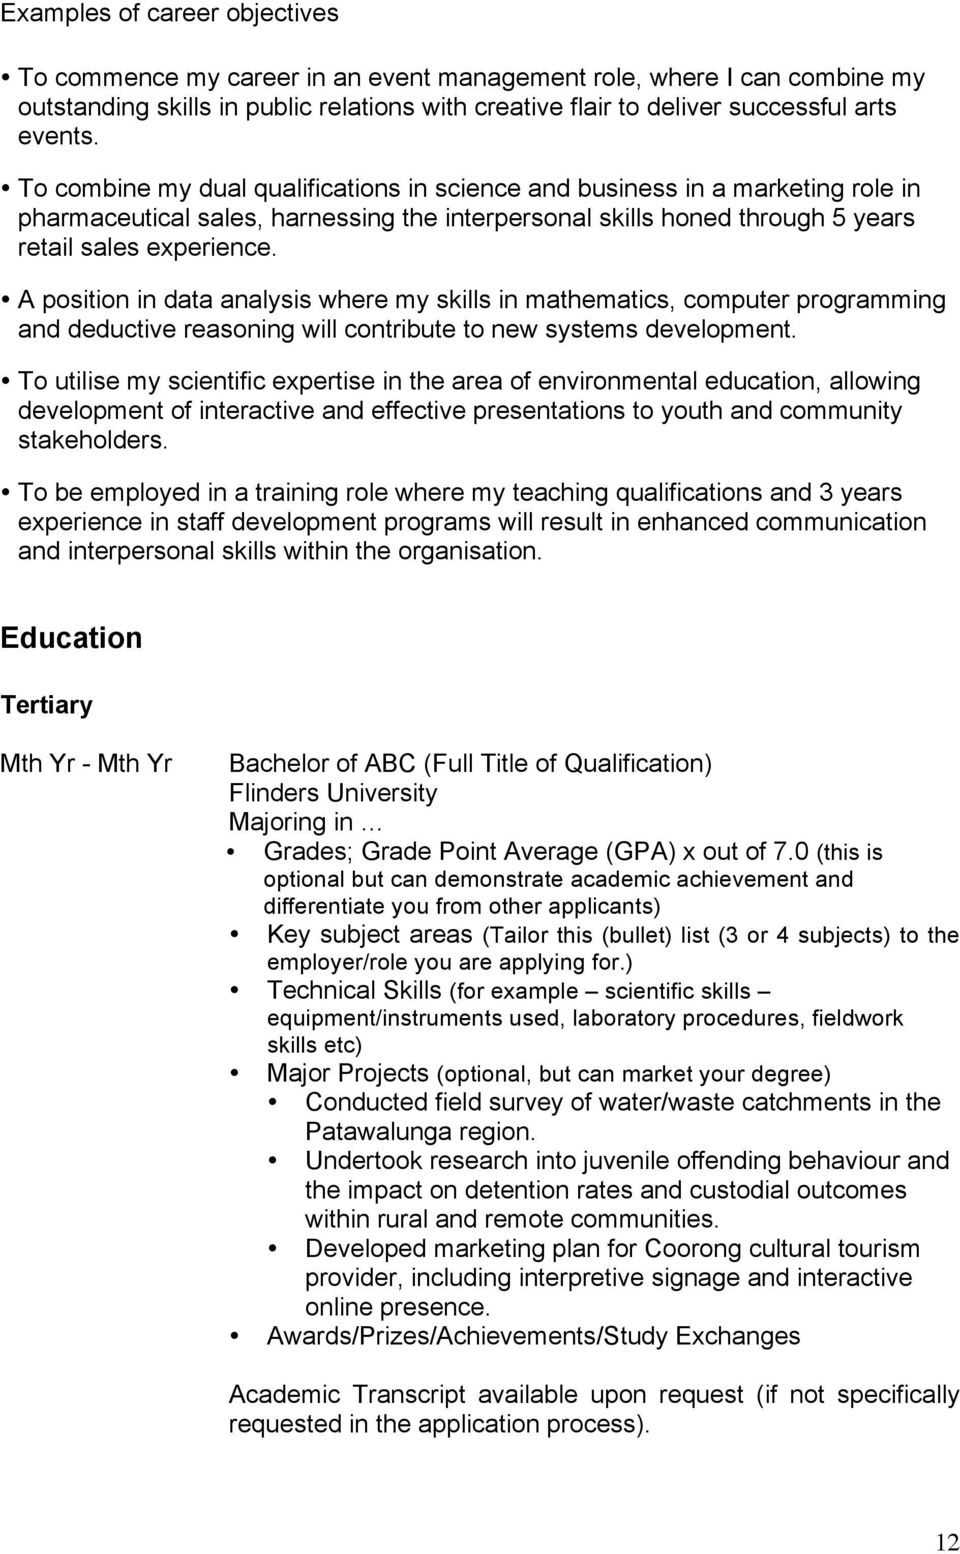 A position in data analysis where my skills in mathematics, computer programming and deductive reasoning will contribute to new systems development.